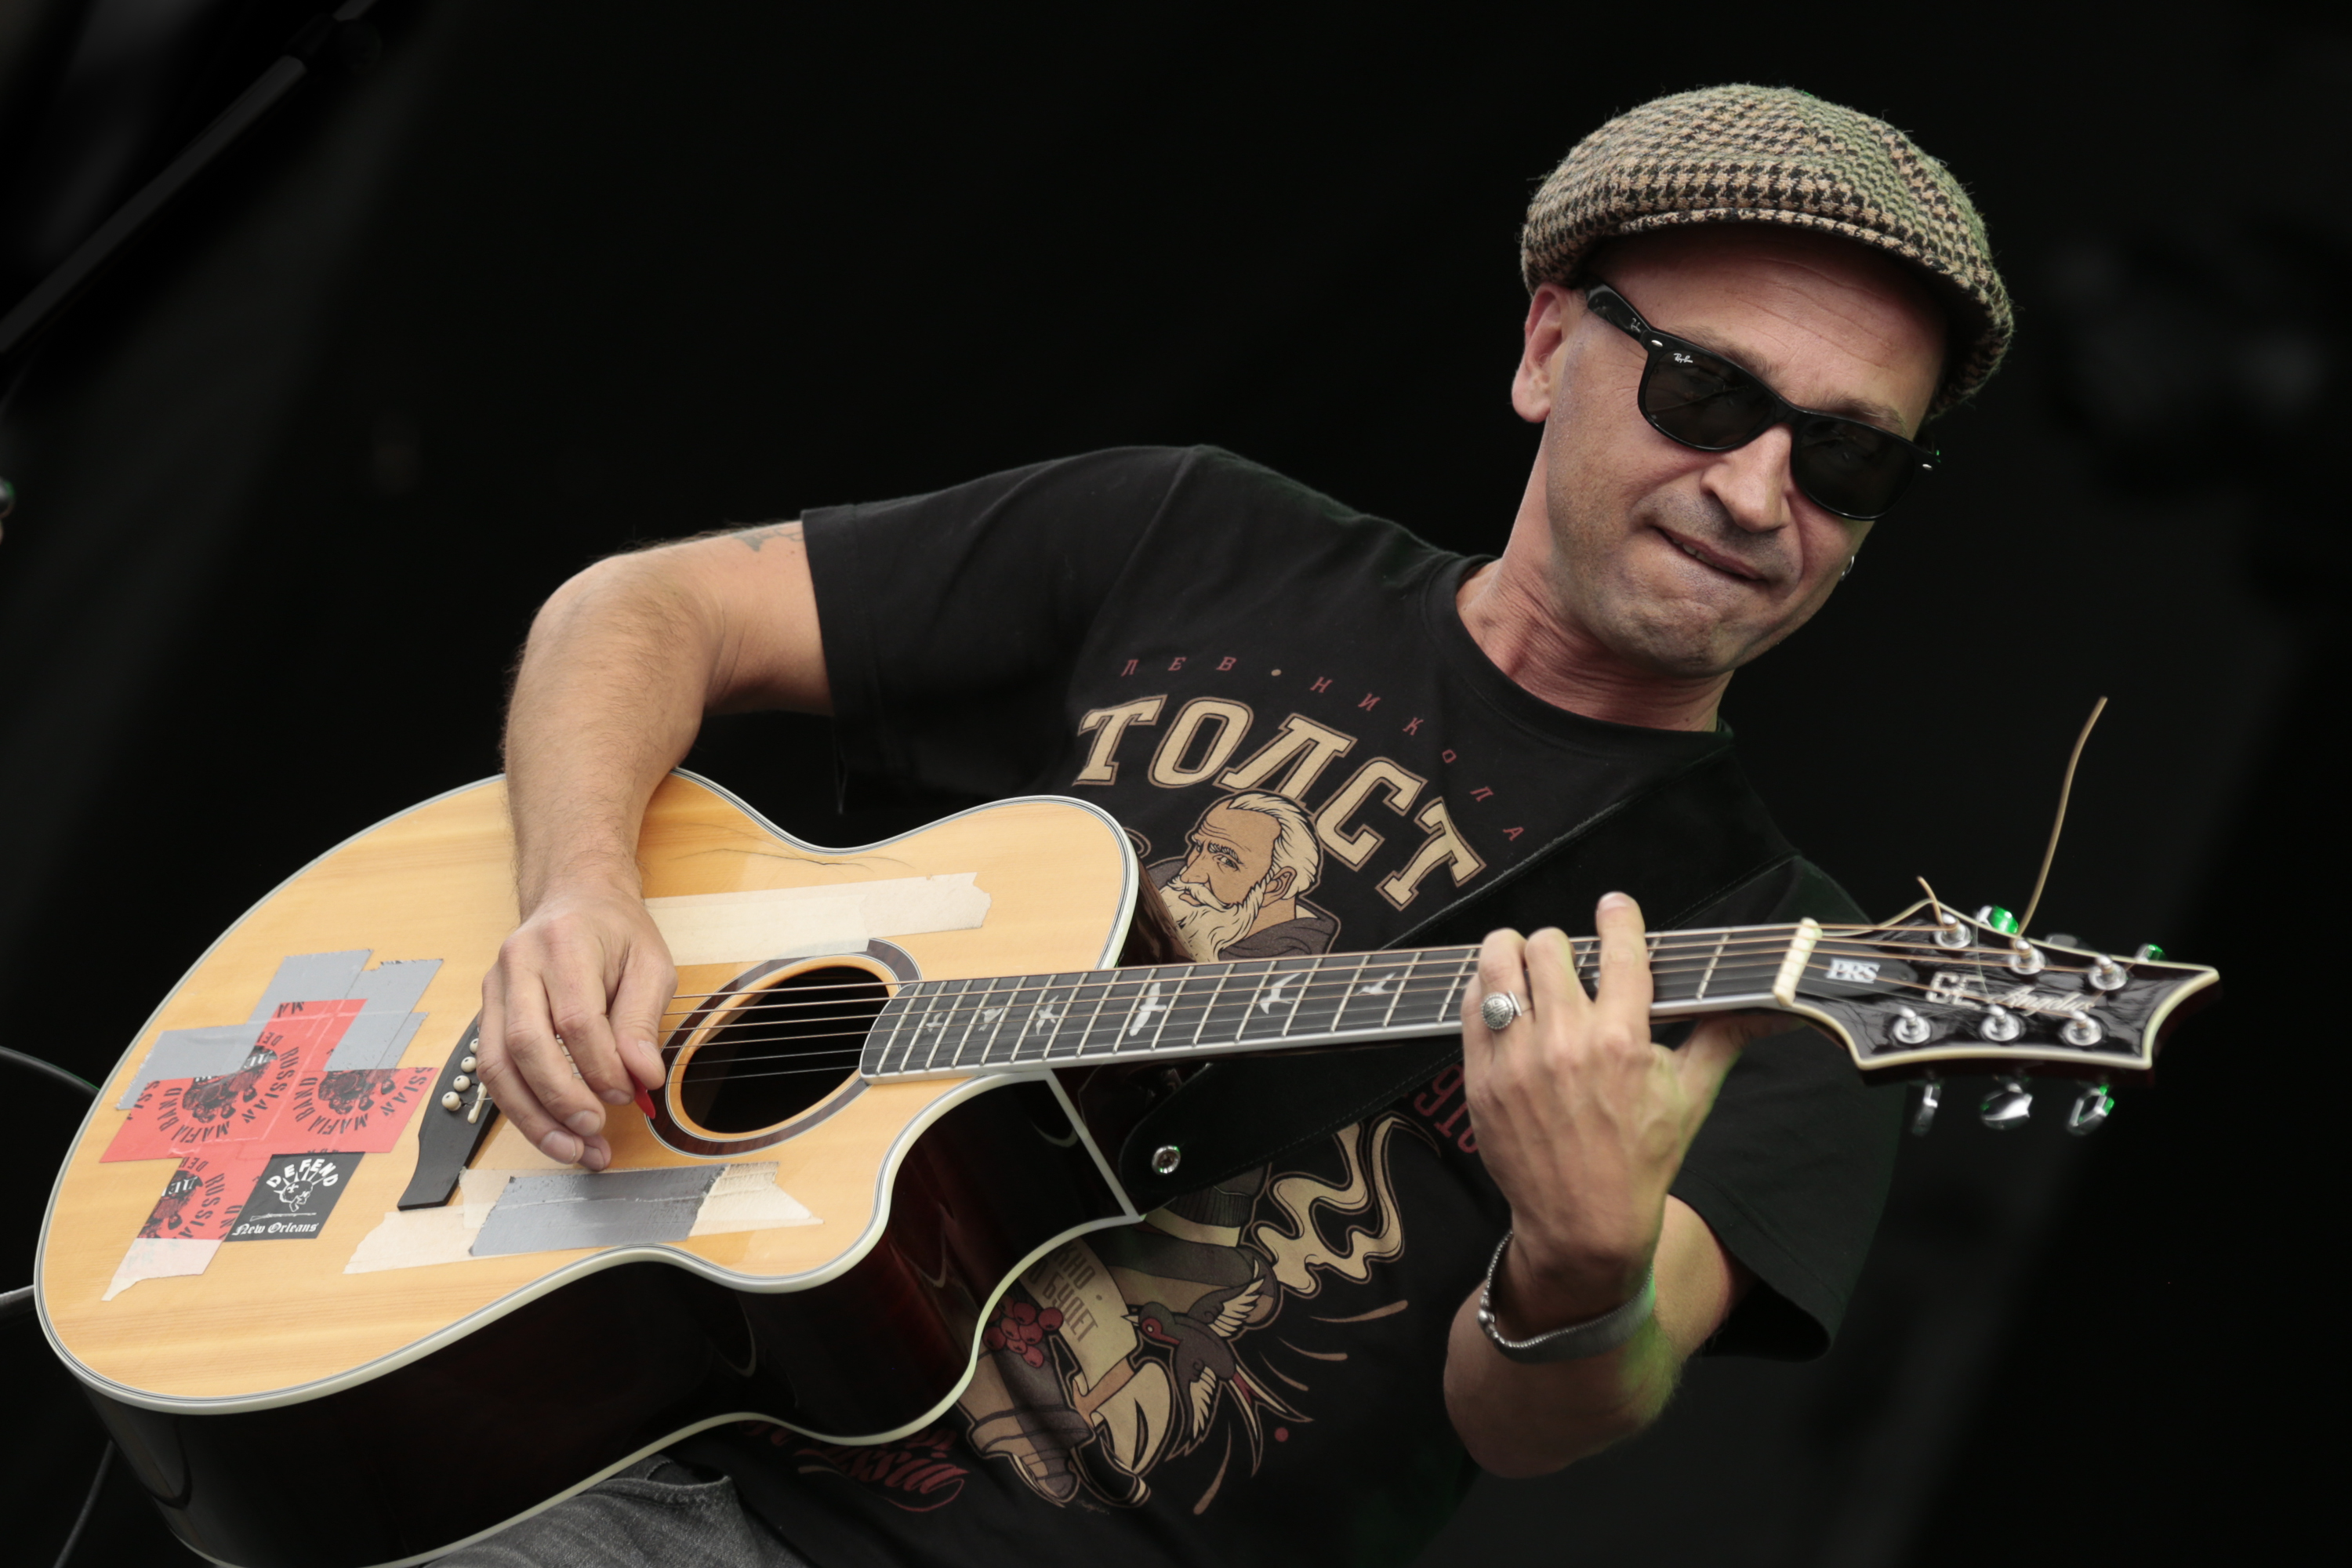 Debauche performs at the RBC Bluesfest in Ottawa on Sunday, July 10, 2016. ~ RBC Bluesfest Press Images PHOTO Mark Horton